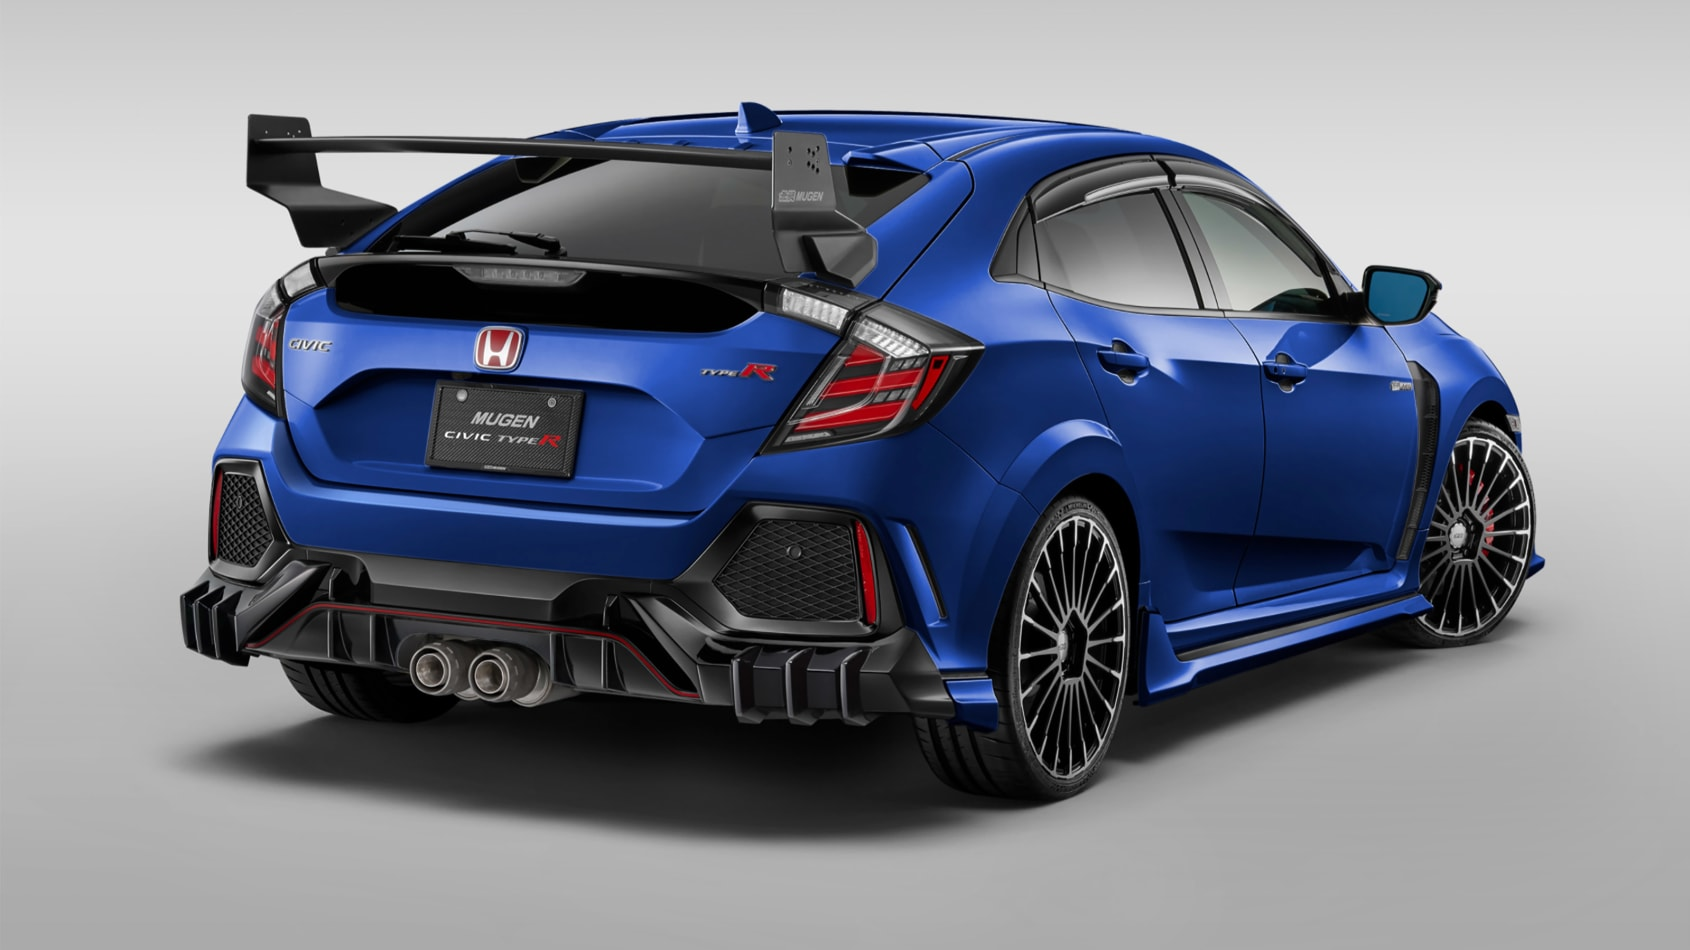 Mugen's New Honda Civic Type R Upgrades Are Not For Introverts